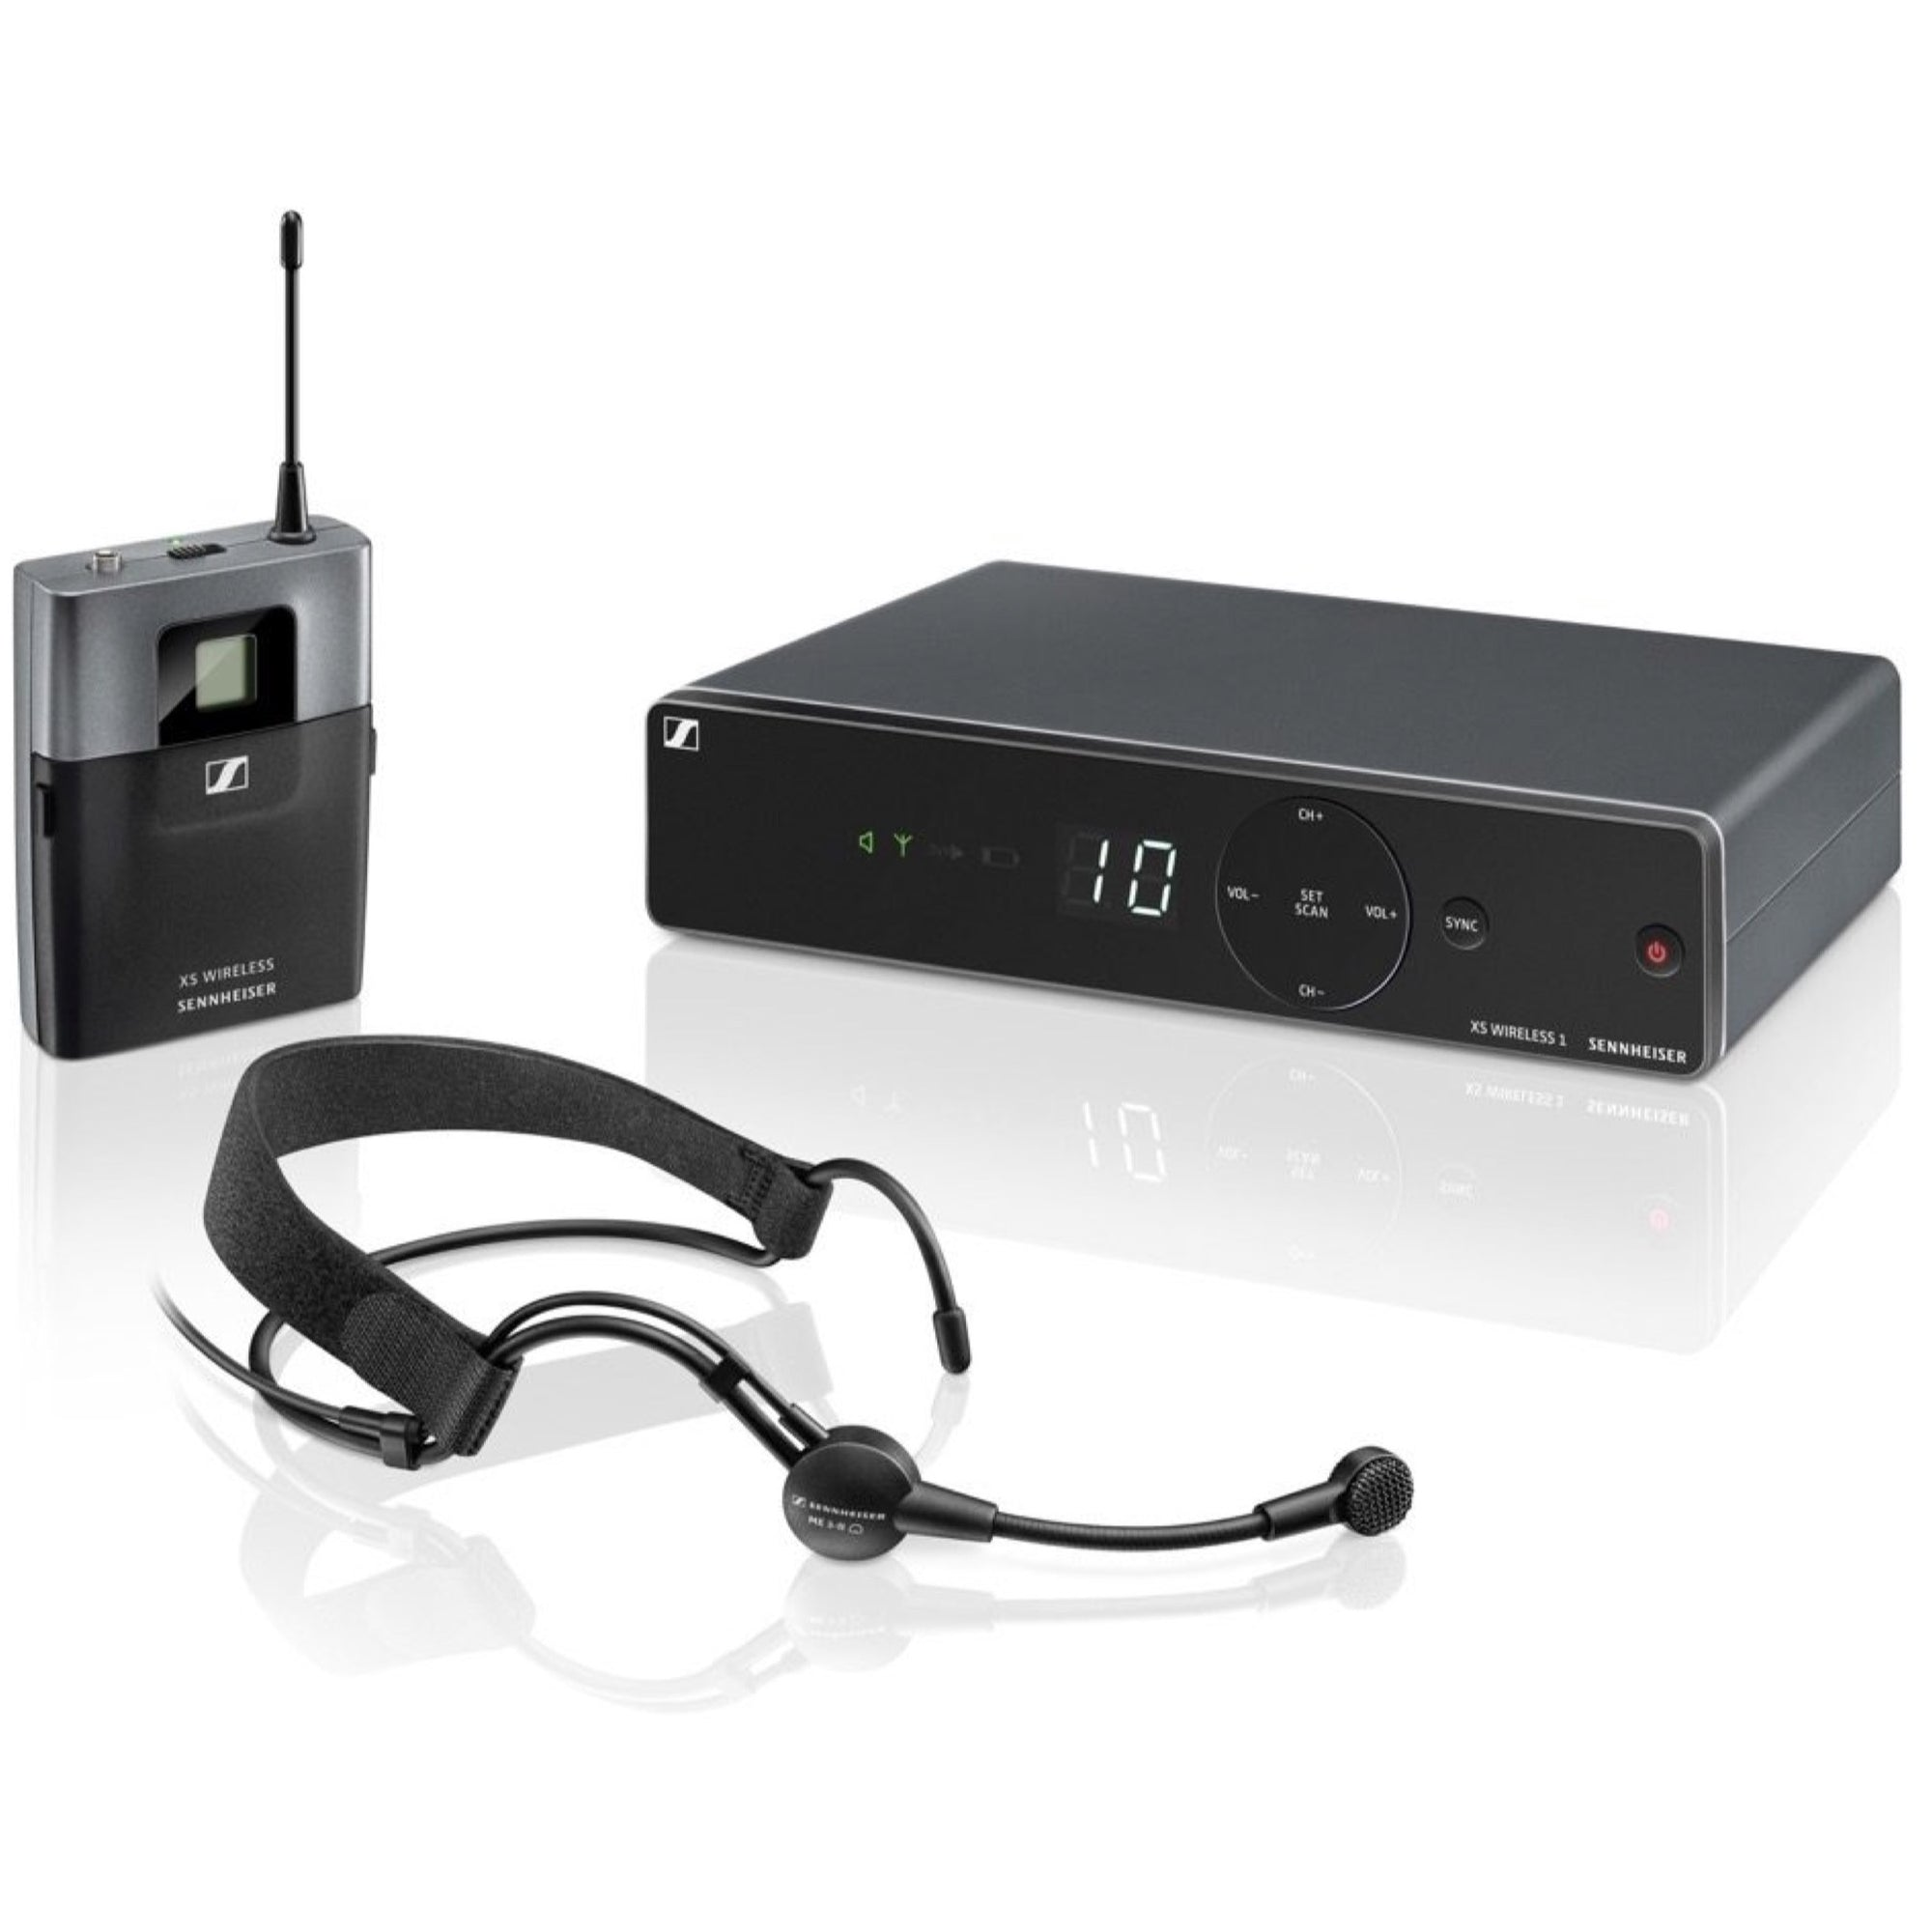 Sennheiser XSW-1 ME-3 Wireless Headset Microphone System